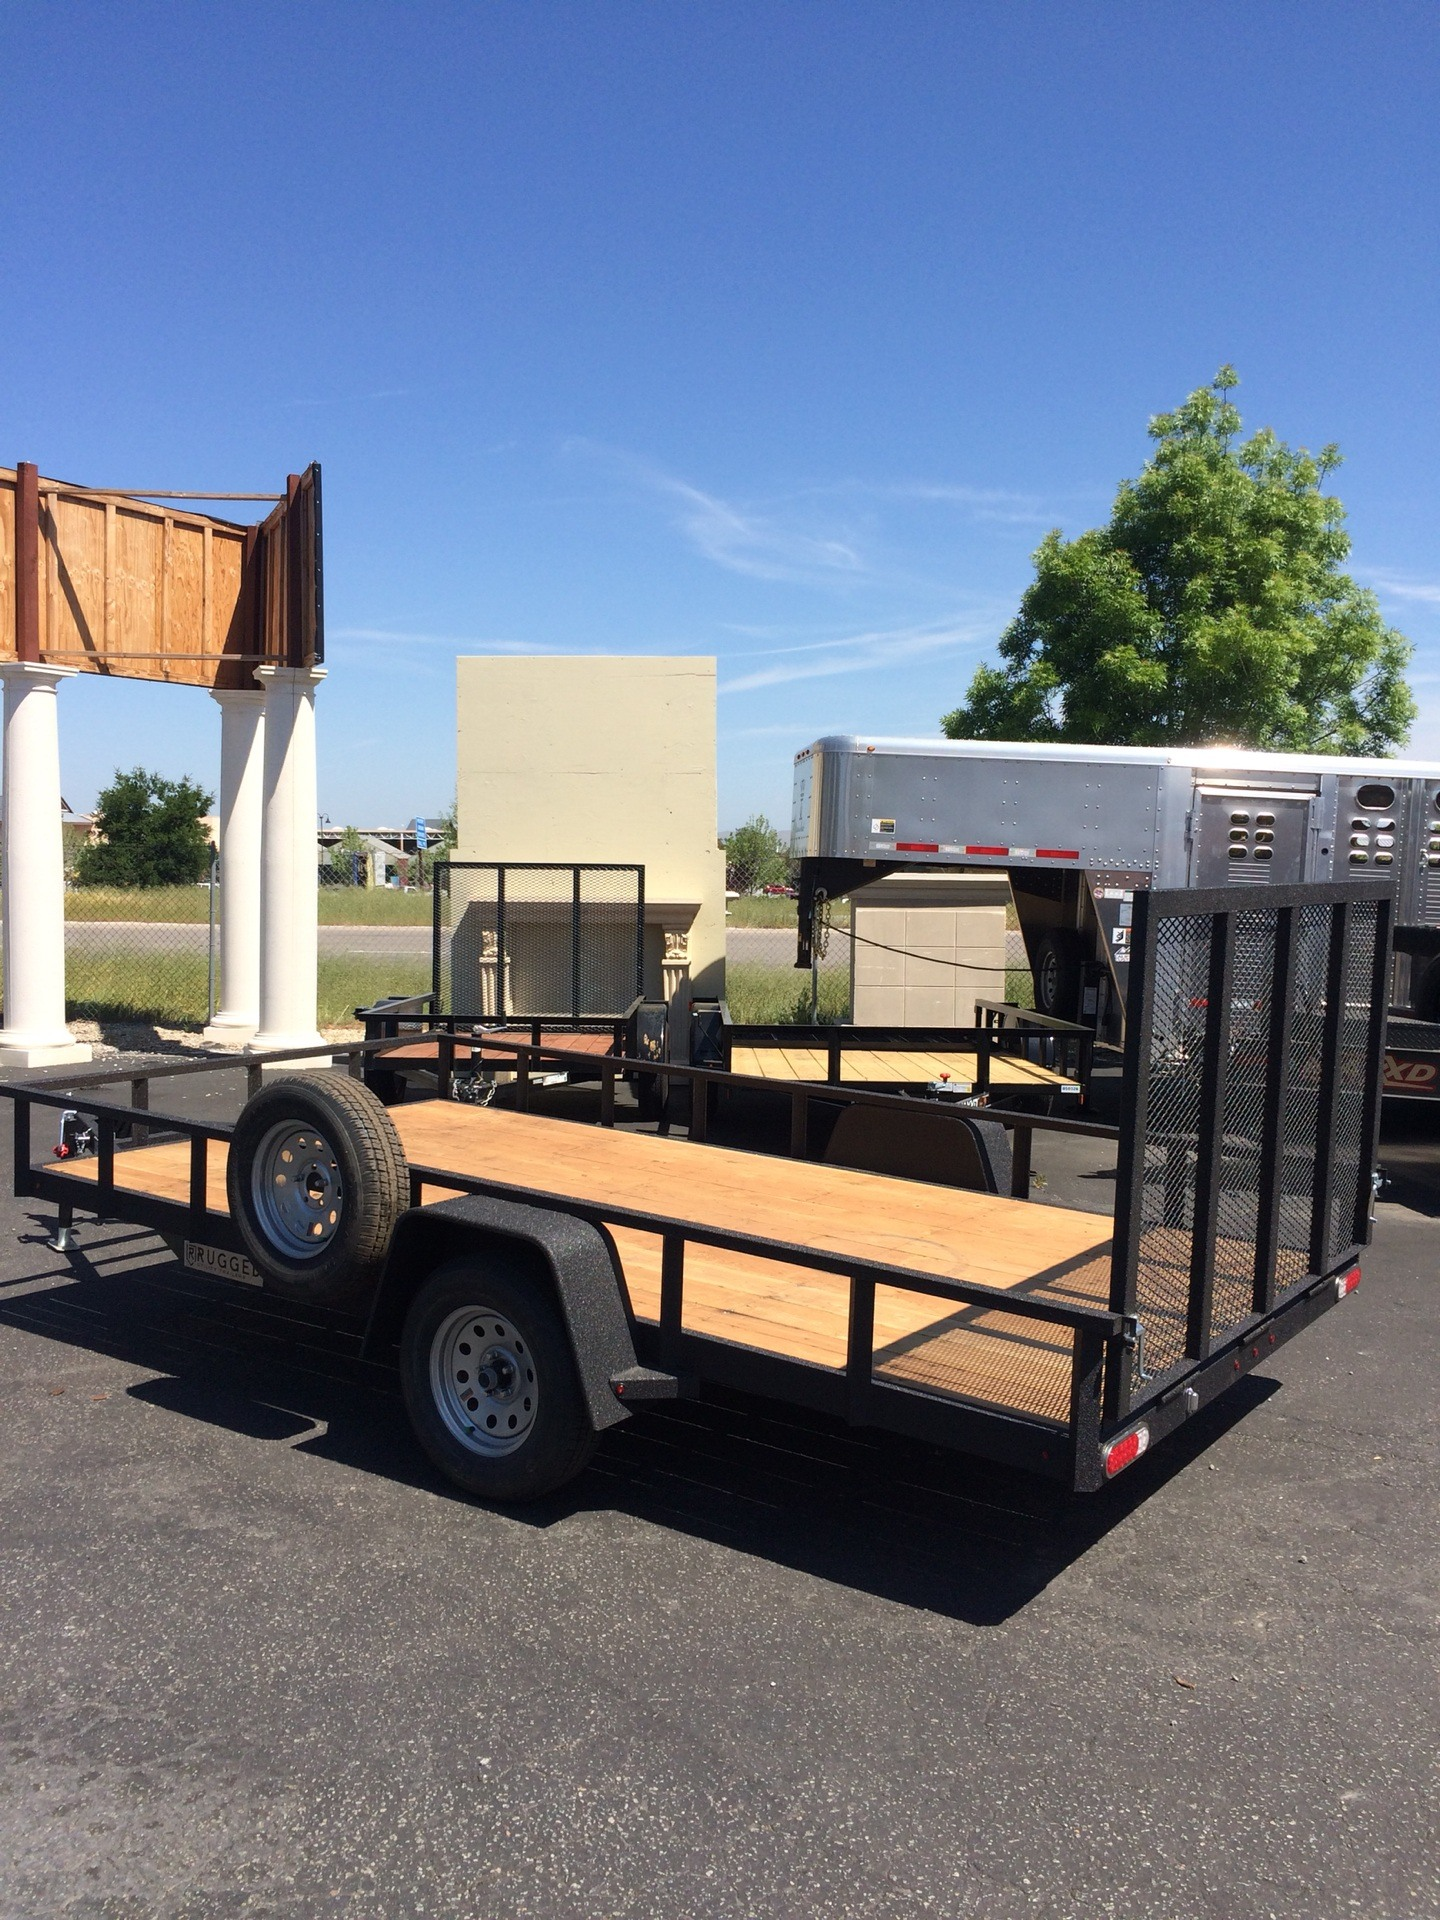 2018 Charmac Trailers 14' x 7' RUGGED STEEL UTILITY TRAILER in Paso Robles, California